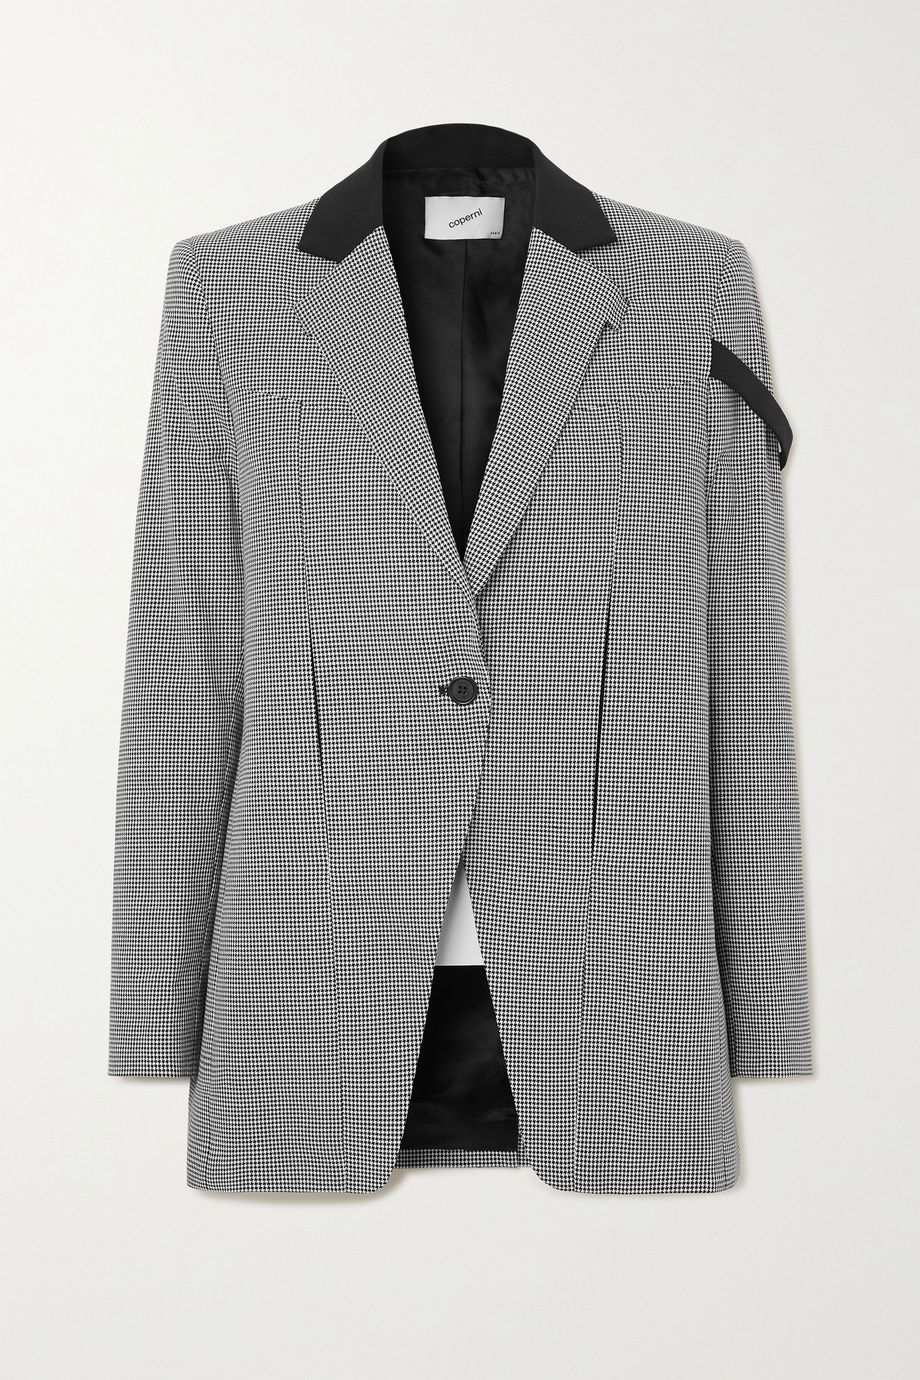 Coperni Connection houndstooth cotton jacket